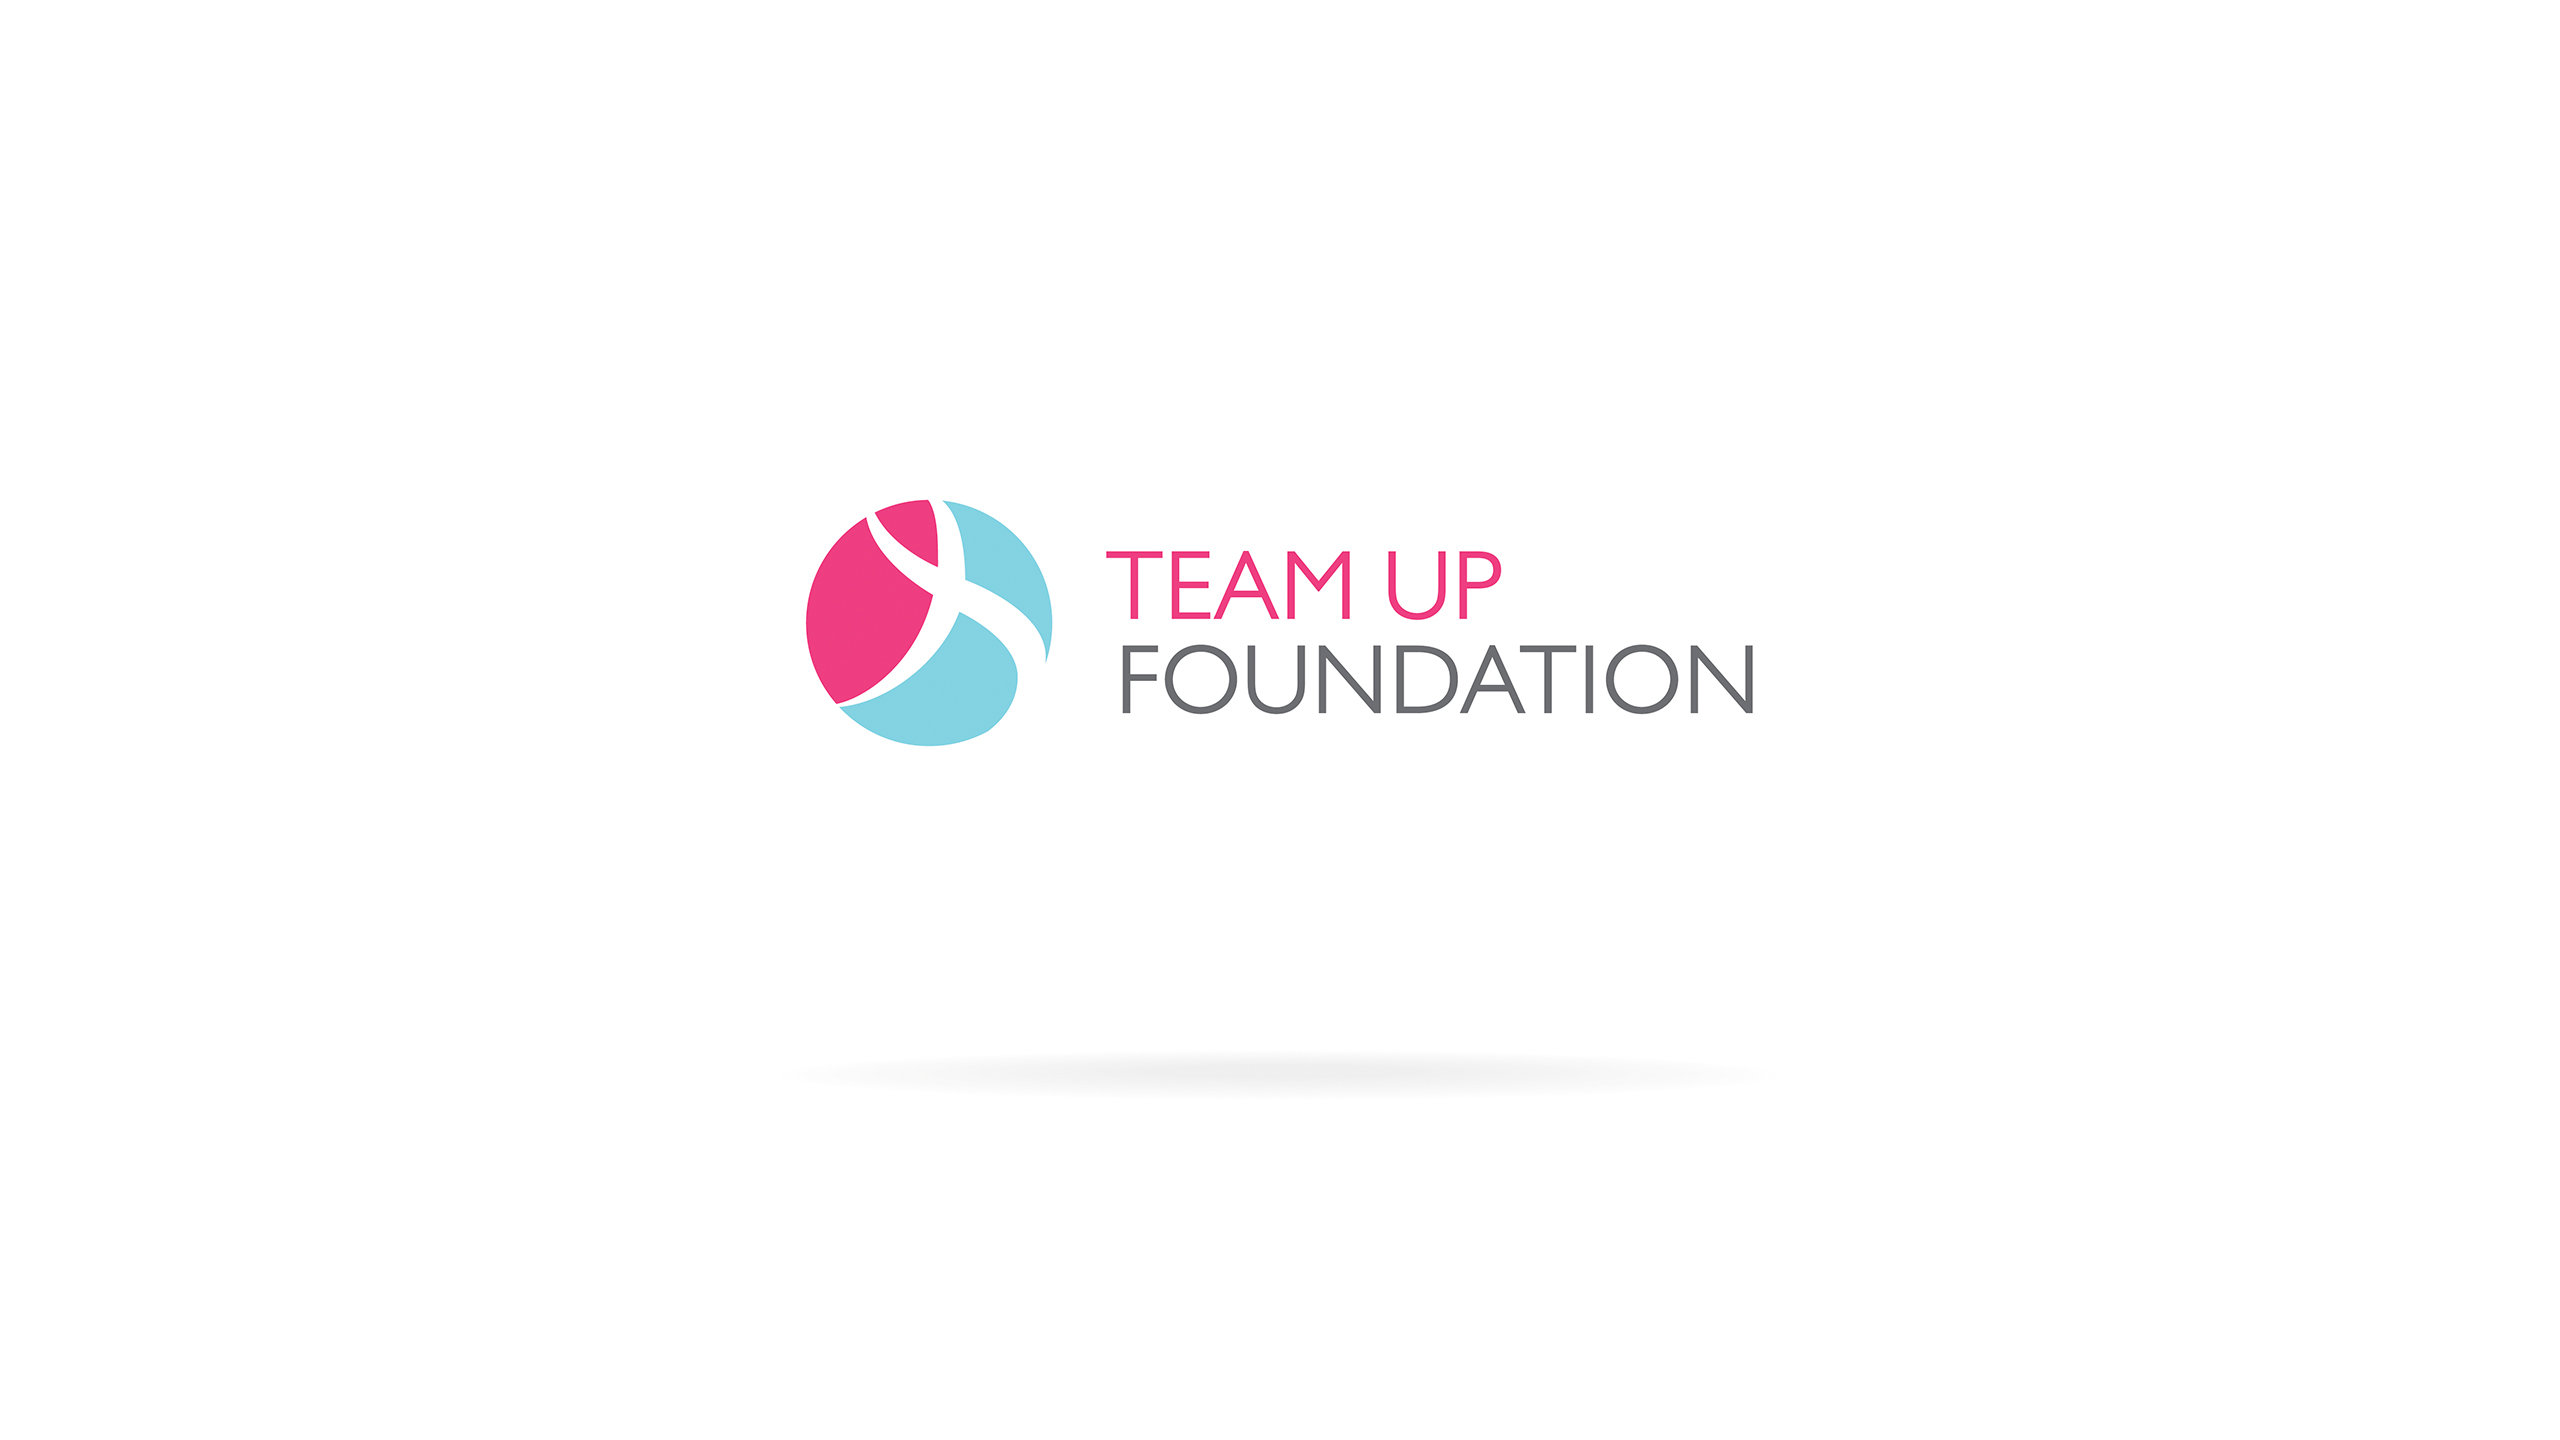 kamikaze_identidad_corporativa_diseno_grafico_team-up-foundation_11